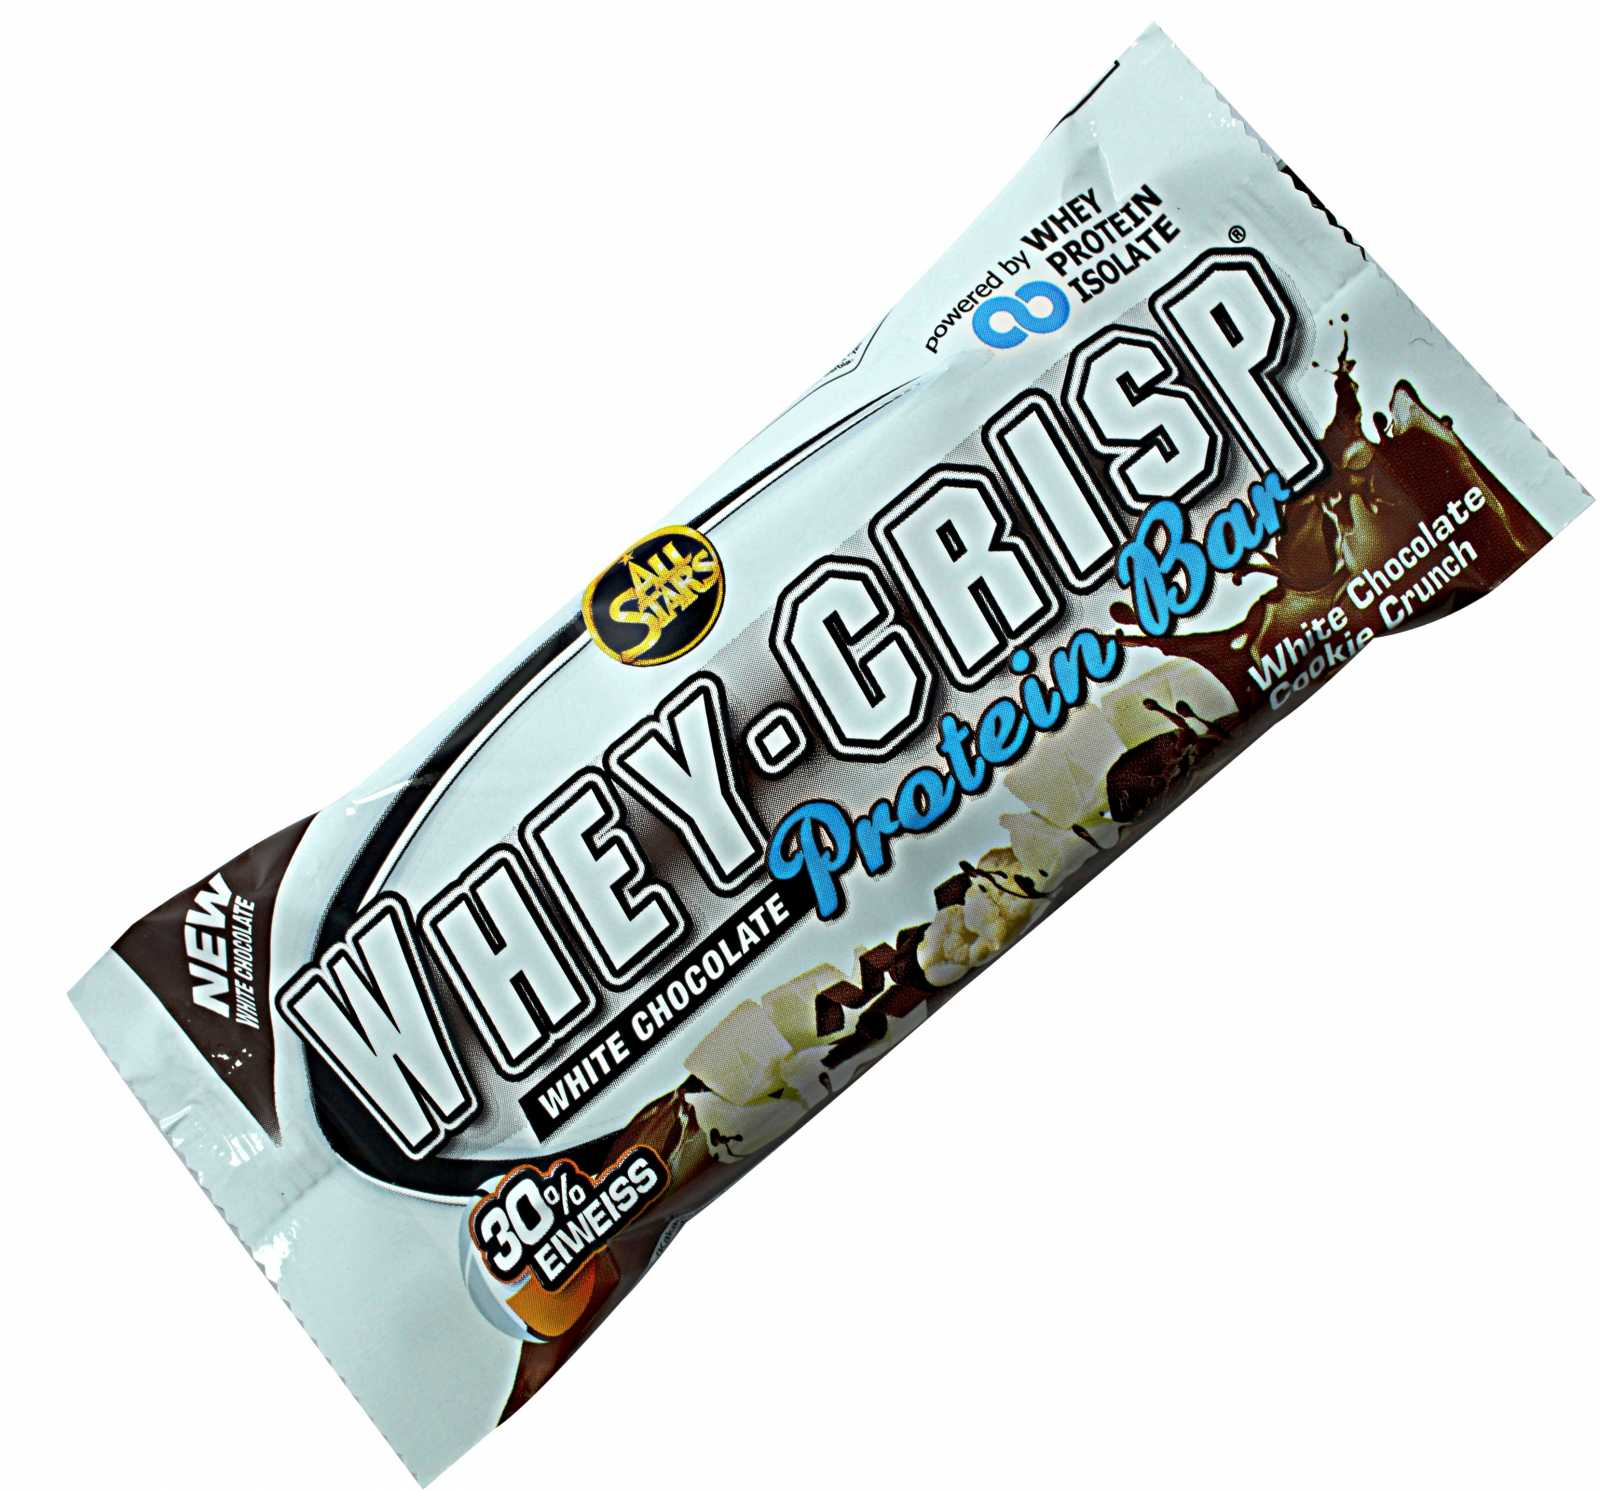 All Stars Whey-Crisp Protein Bar White Chocolate Cookie Crunch - jokasport.nl